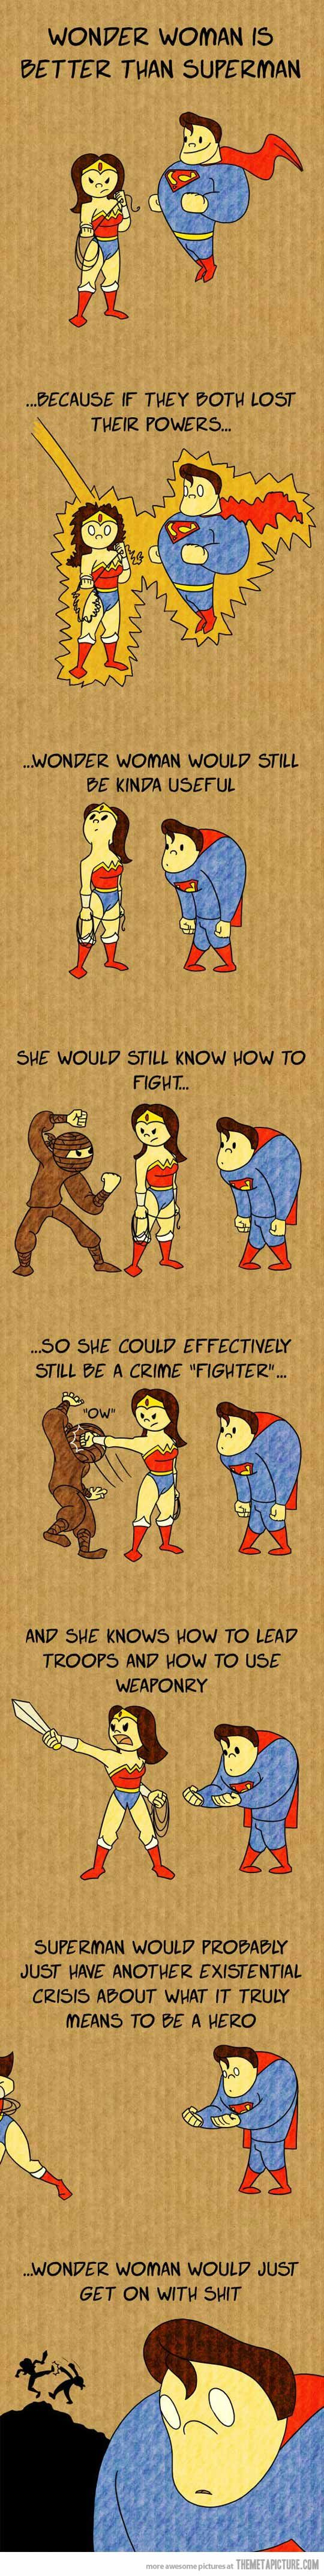 Wonder Woman vs. Super Man…